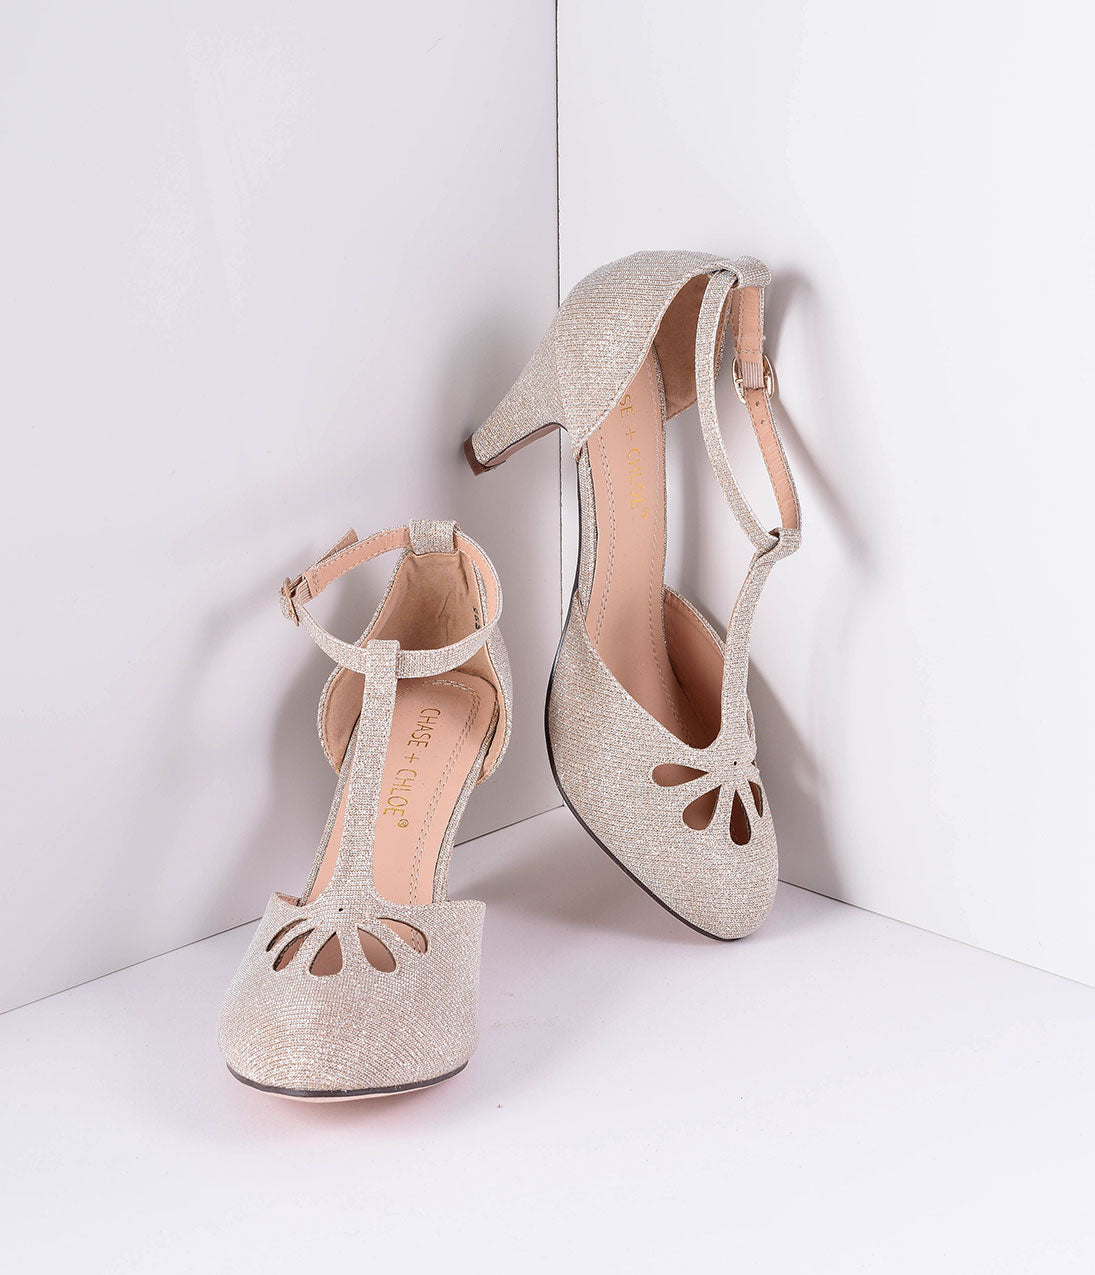 1950s Style Shoes Nude Sparkle Cutout Kimmy T-Strap Heels $46.00 AT vintagedancer.com